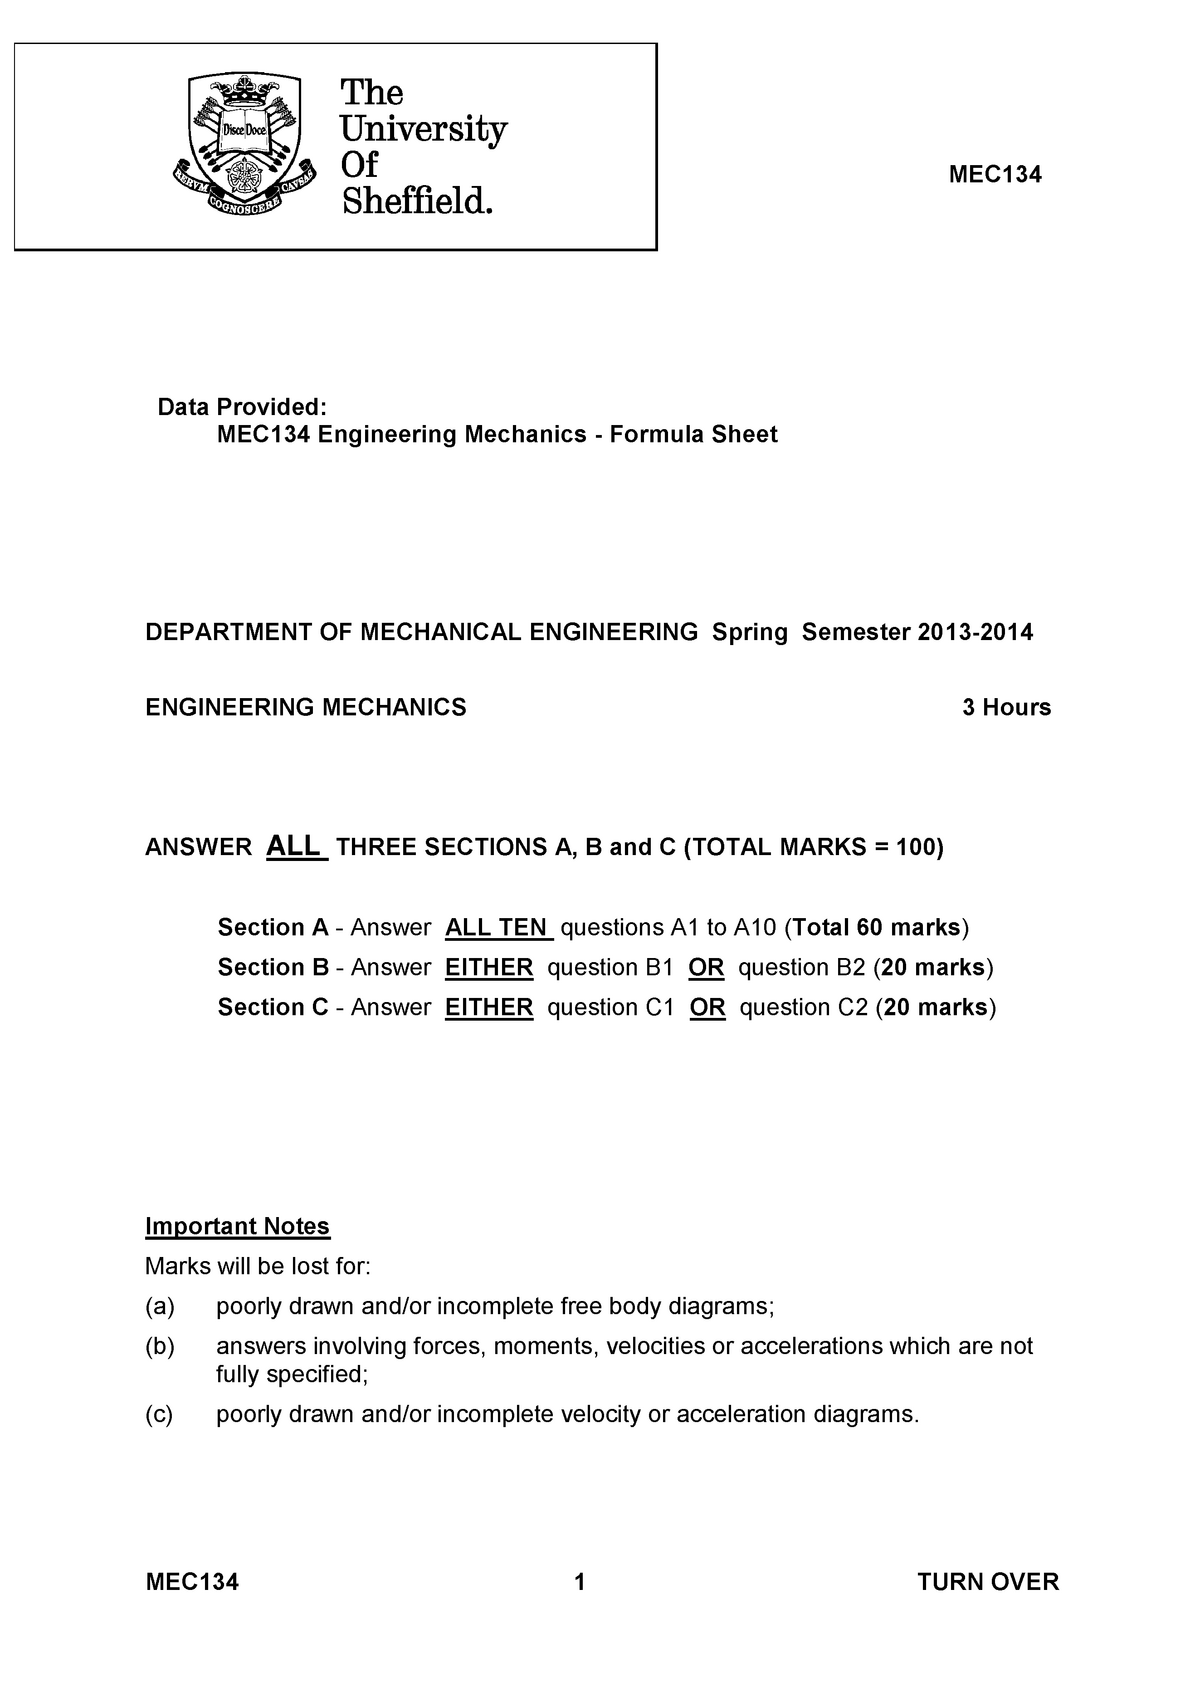 Exam 2014, questions and answers - Engineering Mechanics